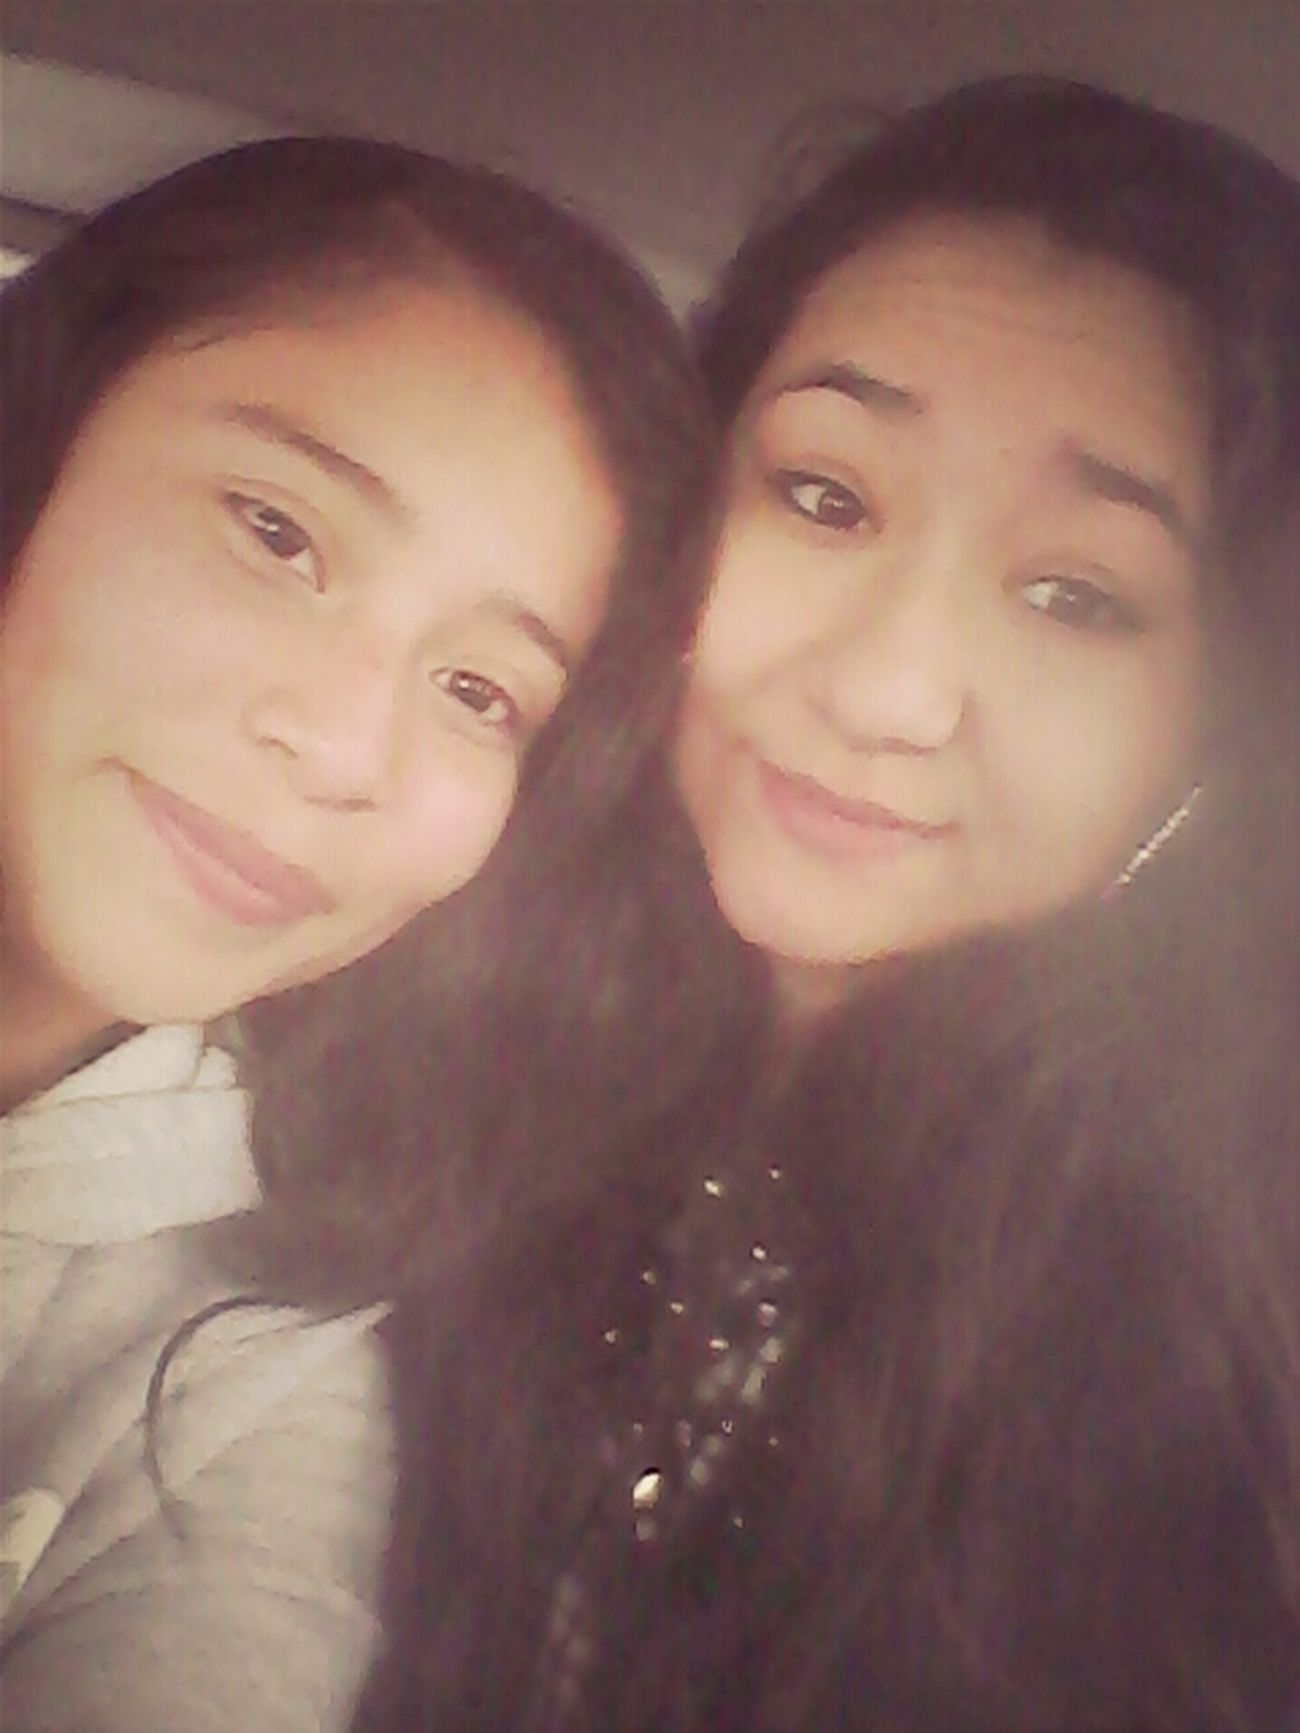 Me and andrea ^.^